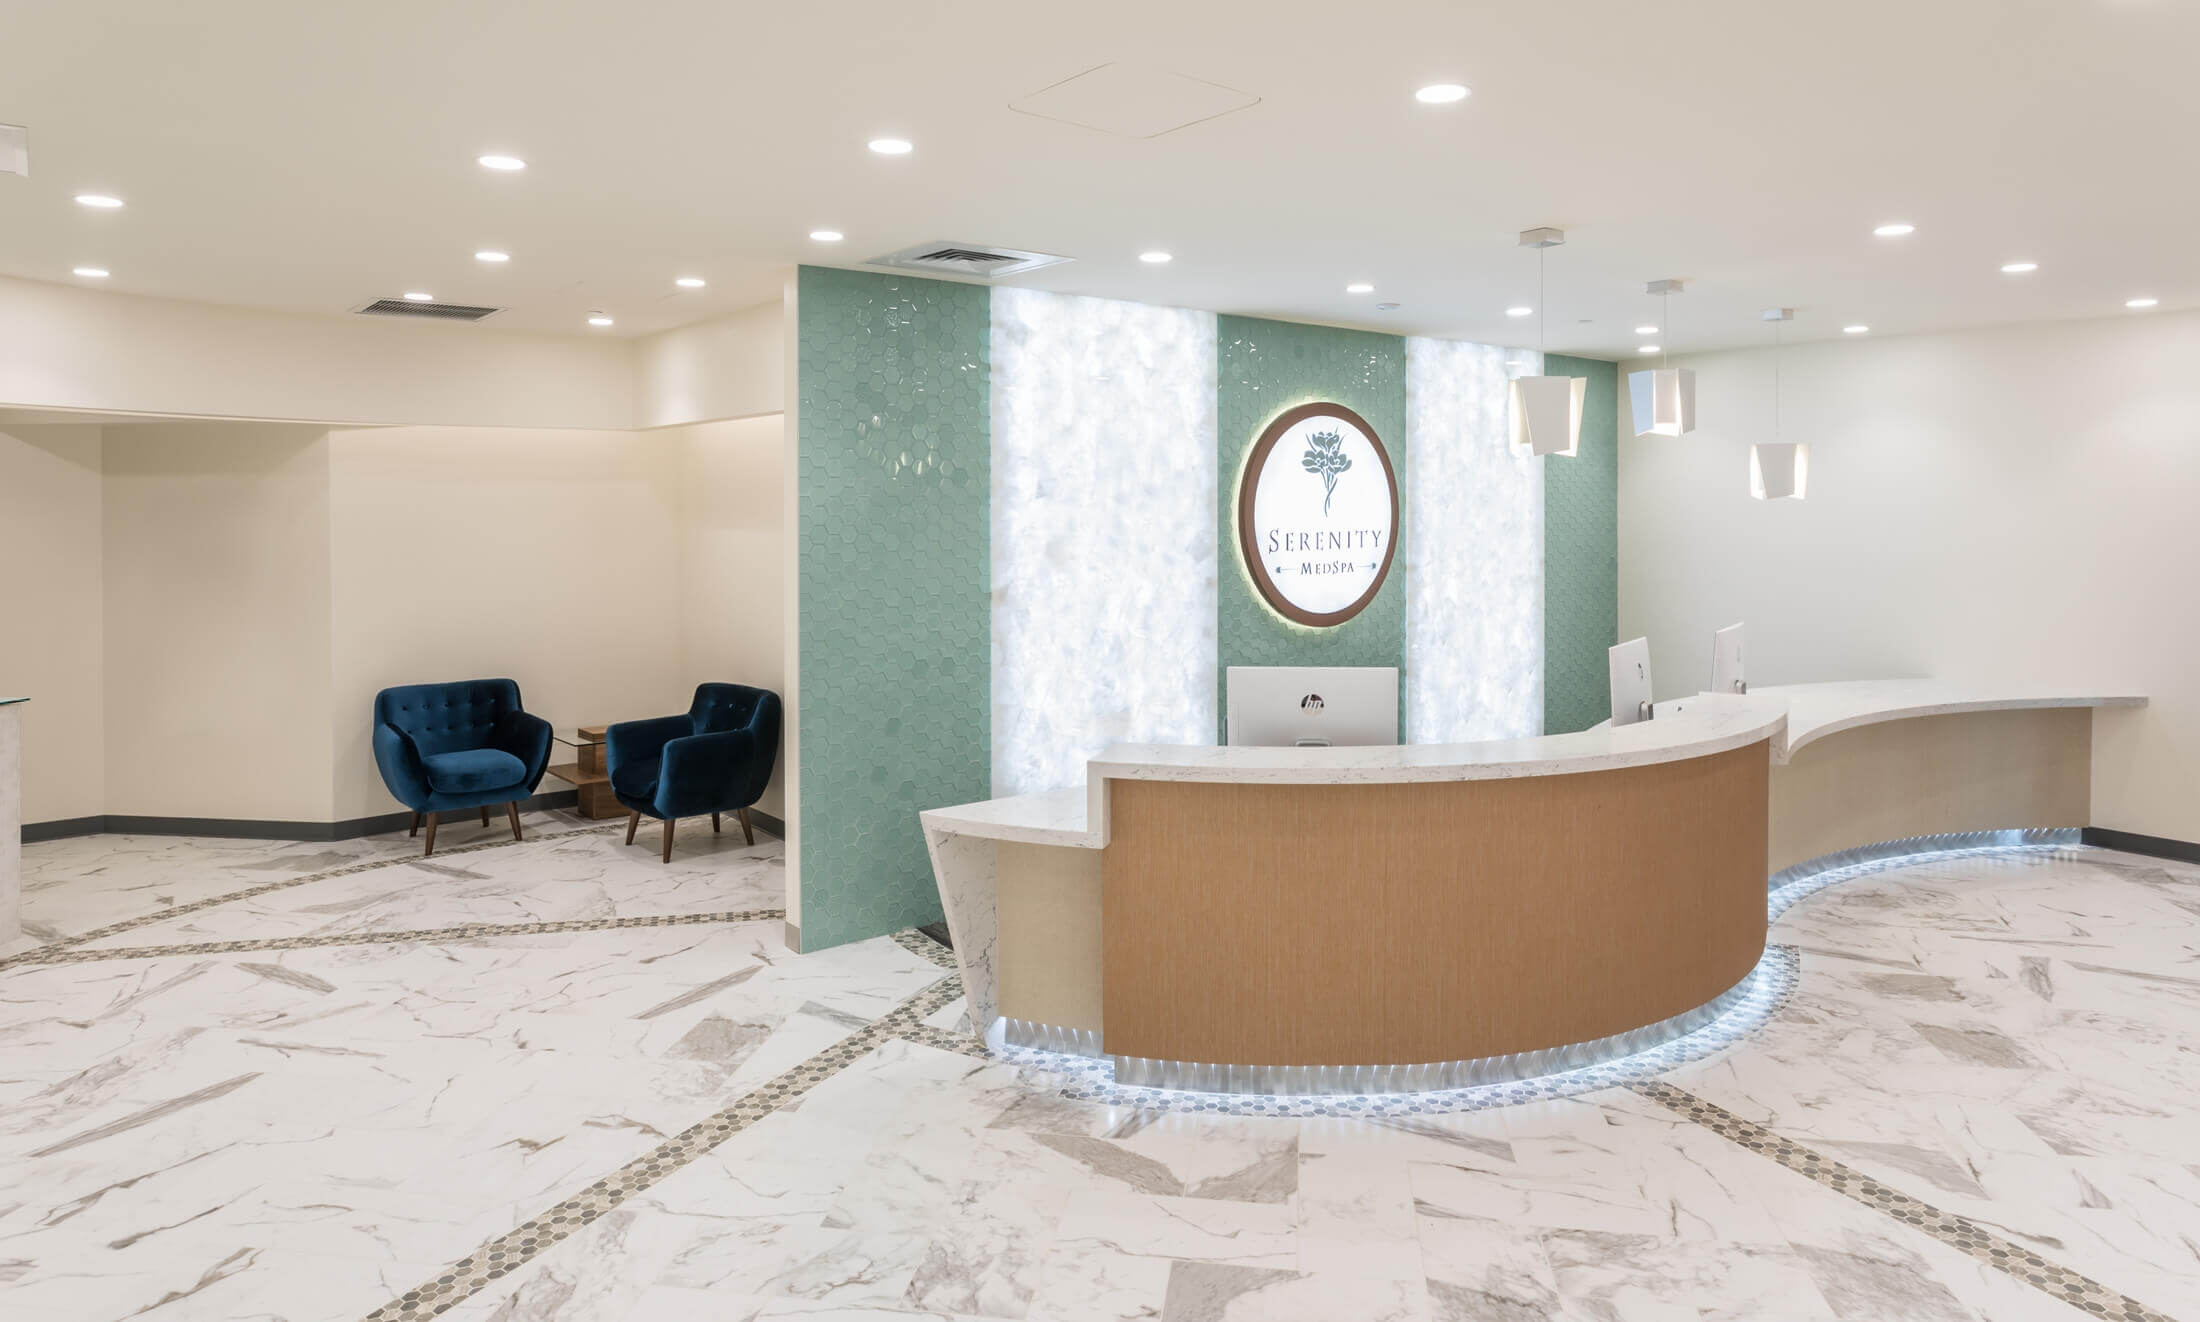 Serenity MedSpa interior commercial renovation